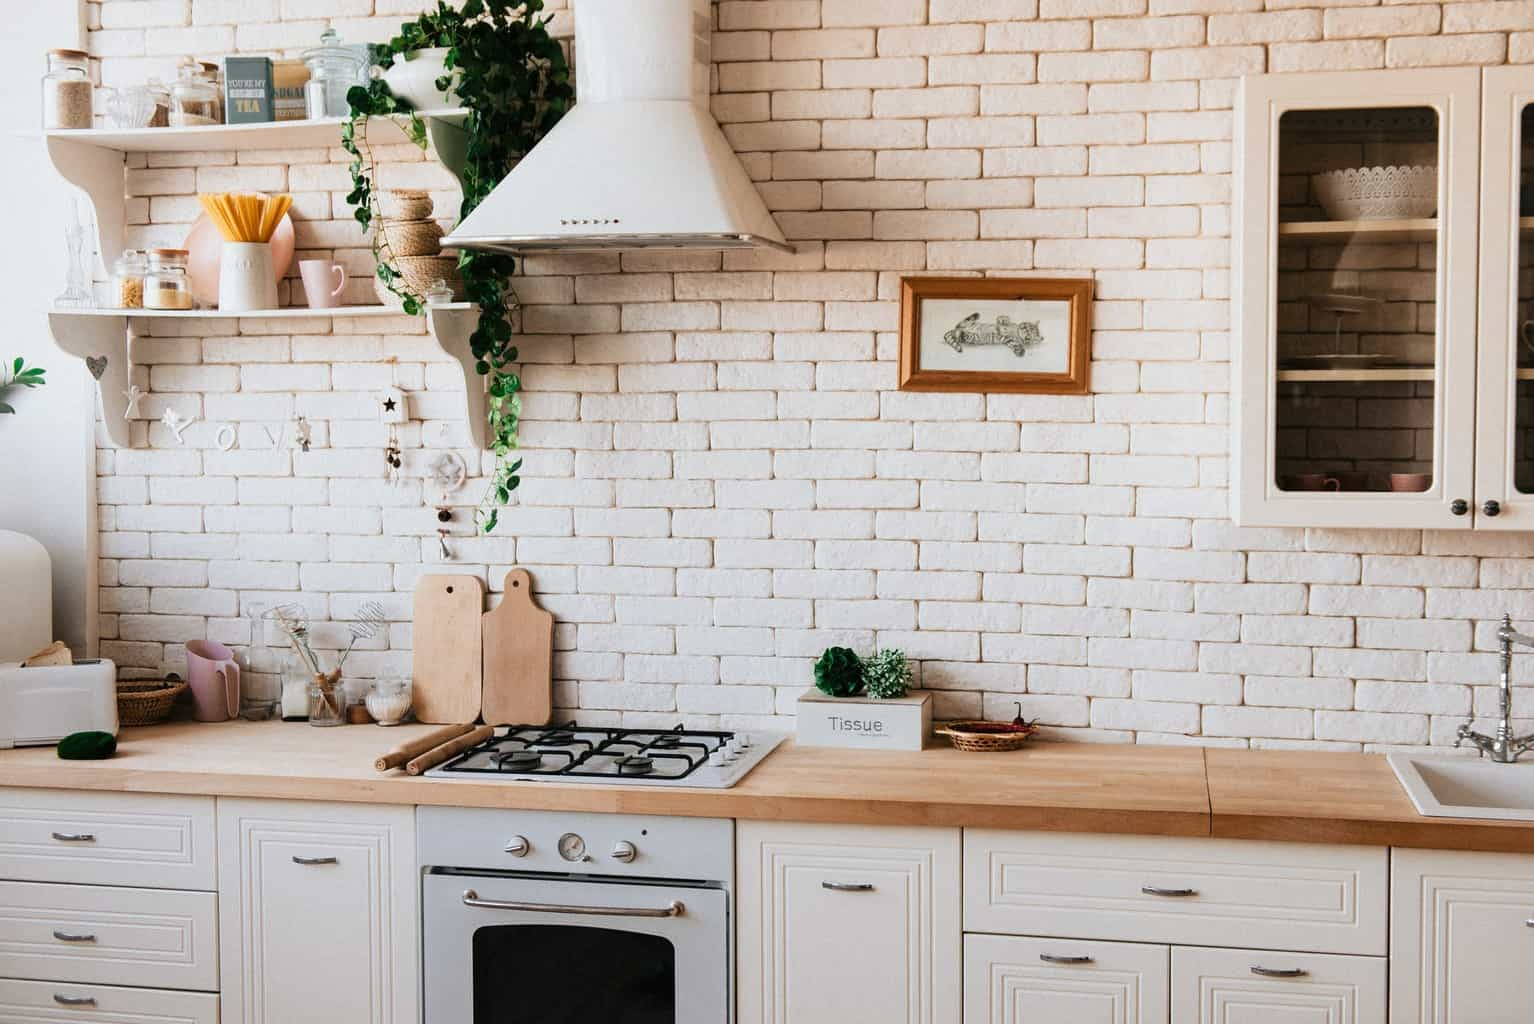 Easy Tips to Freshen Up Your Home In The New Year